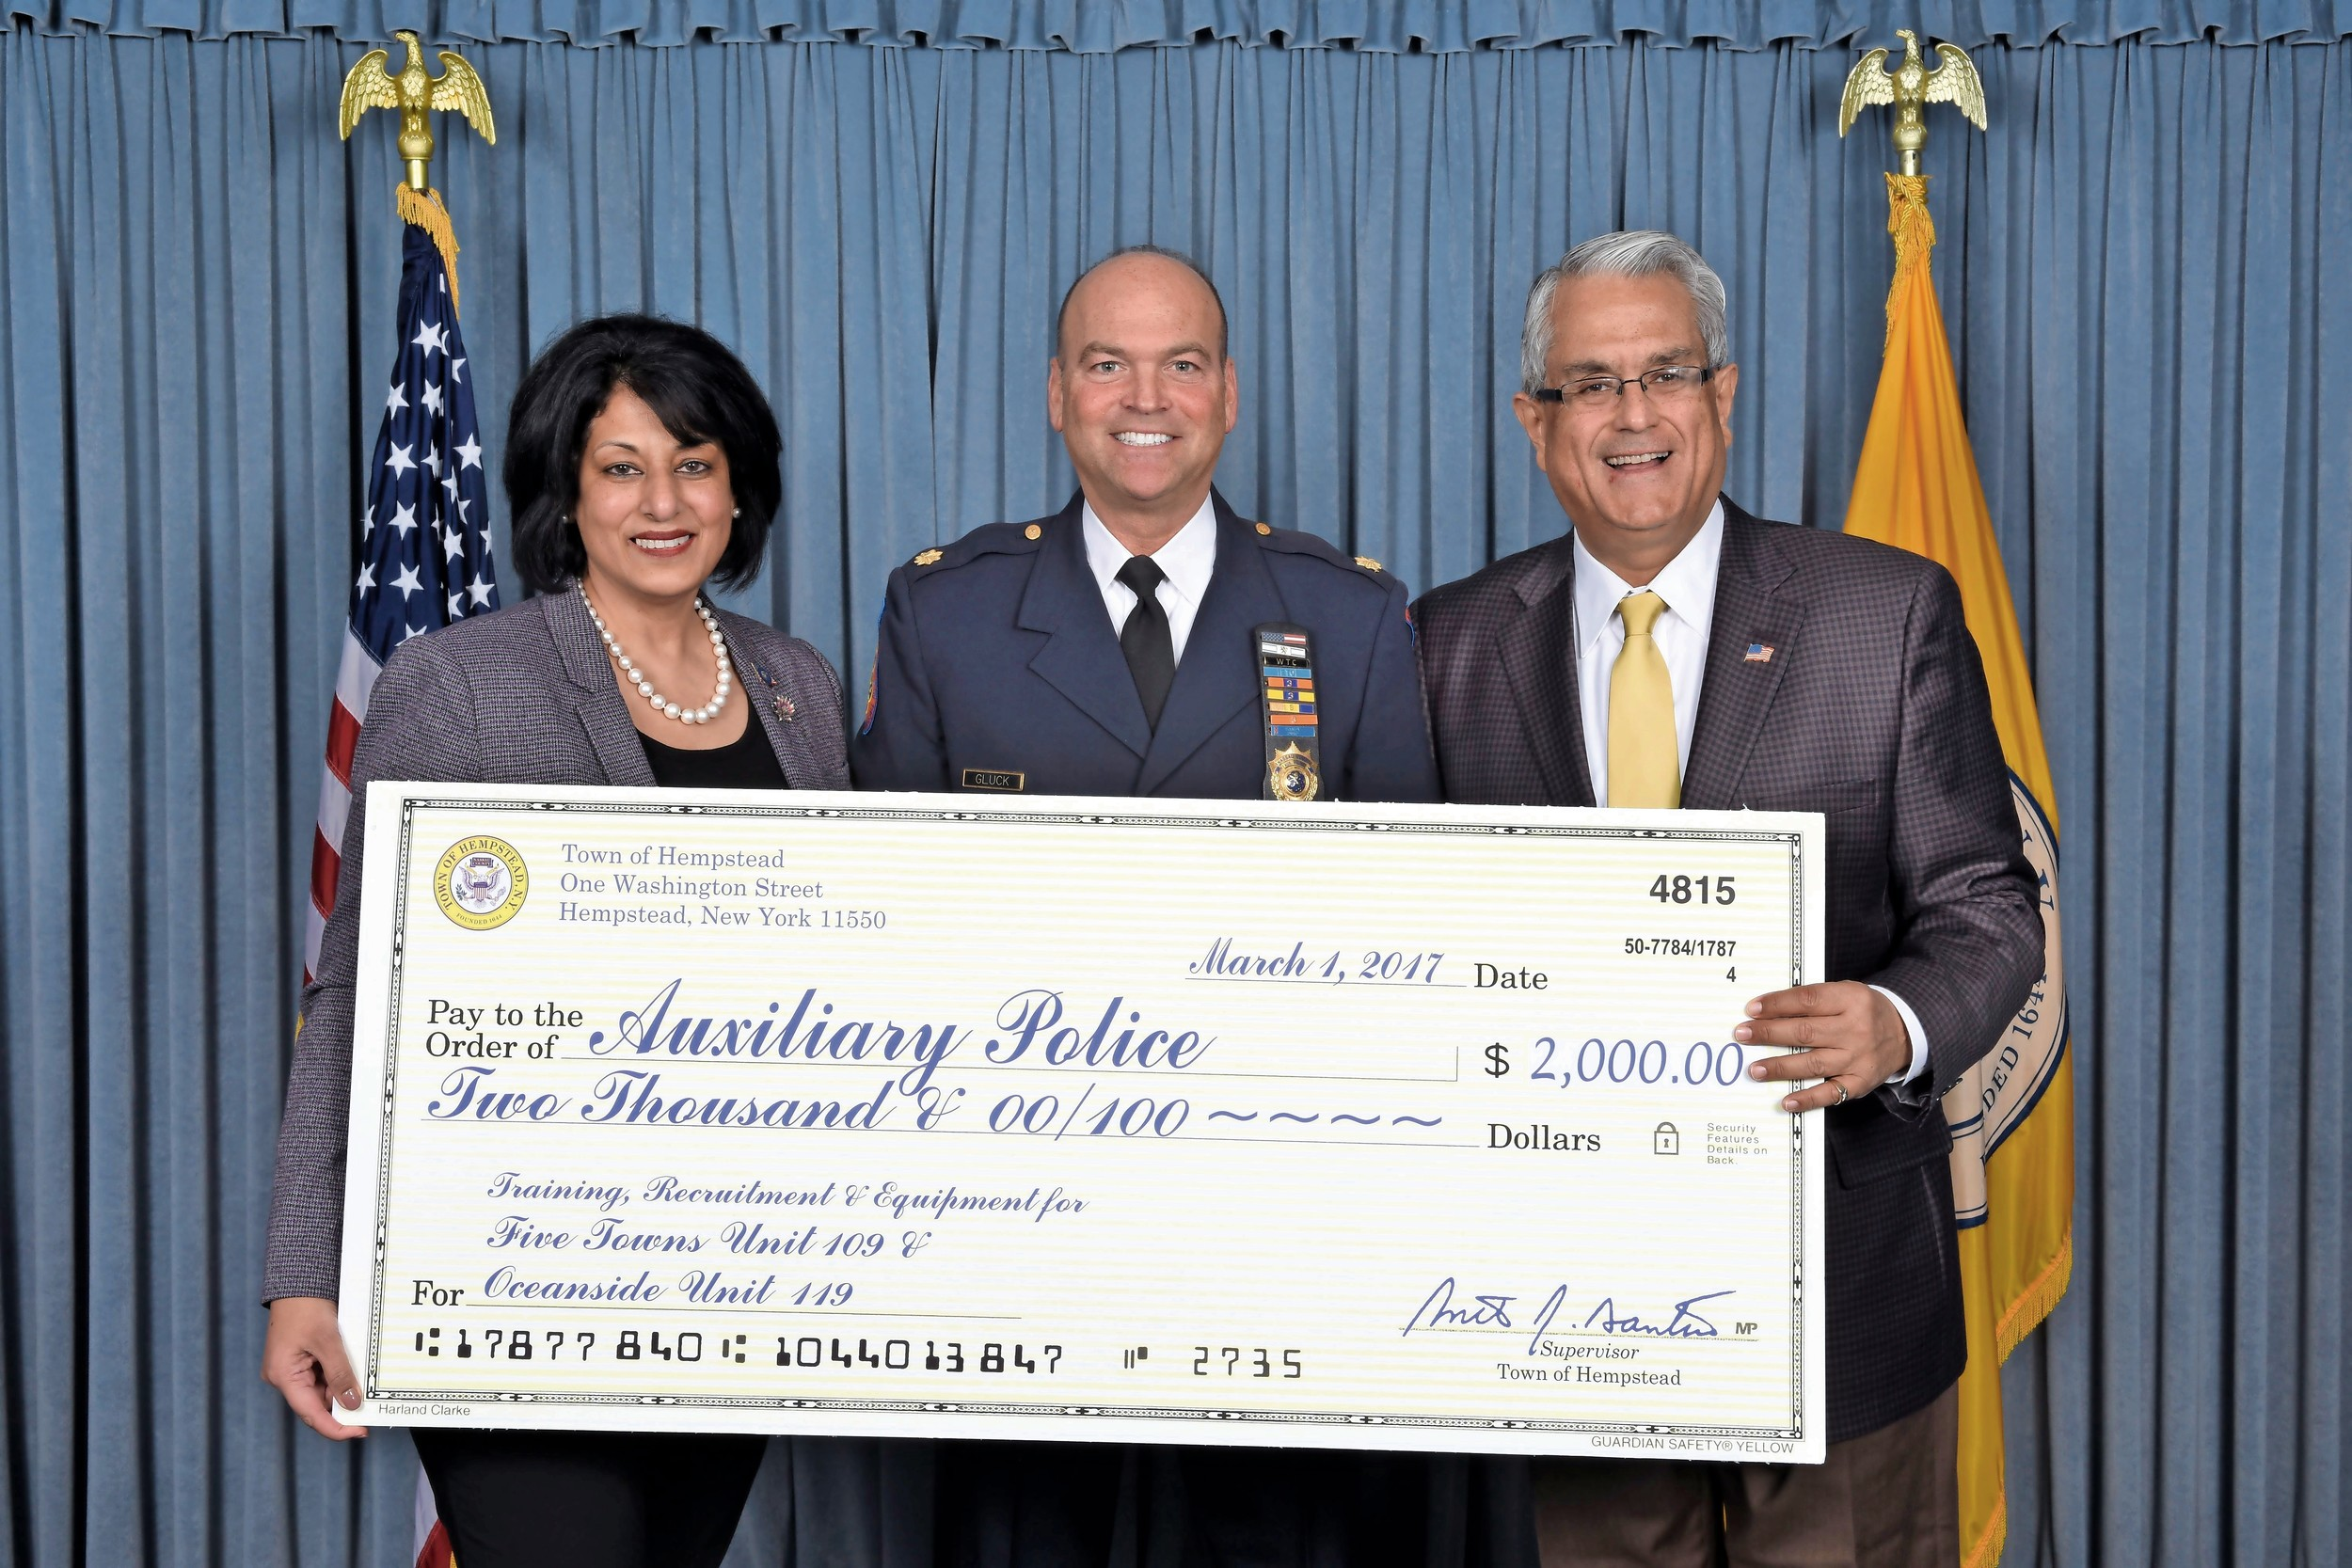 Town of Hempstead Town Clerk Nasrin Ahmad, along with Supervisor Anthony Santino, showed off a facsimile check with Deputy Inspector Danny Gluck, center, which will benefit the  auxiliary police units in the Five Towns (109) and Oceanside (119).